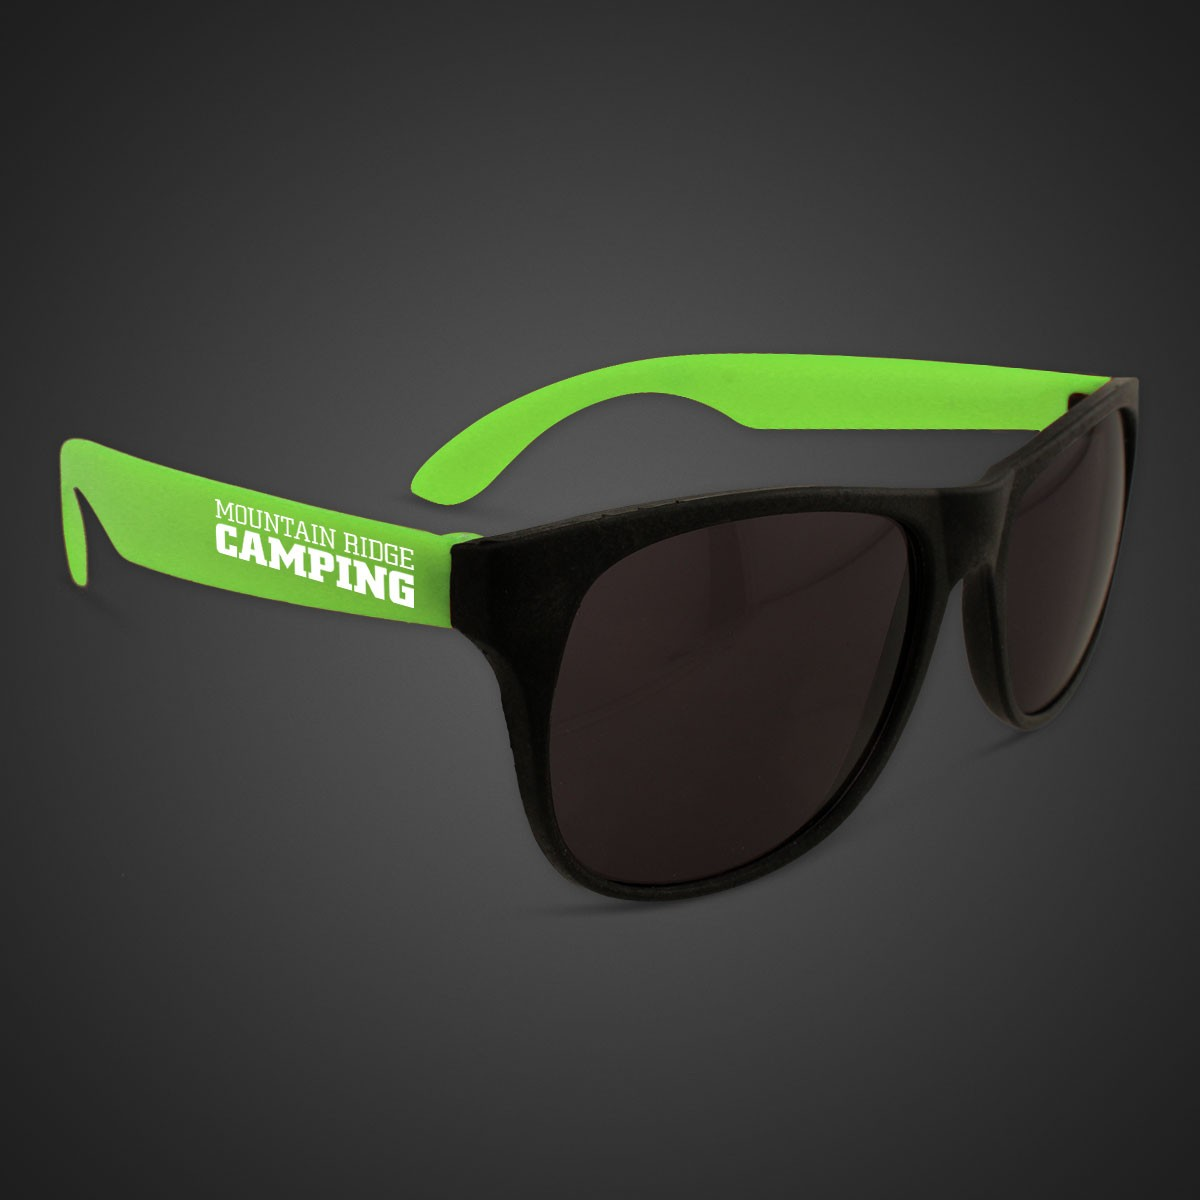 NEON SUNGLASSES WGREEN ARMS